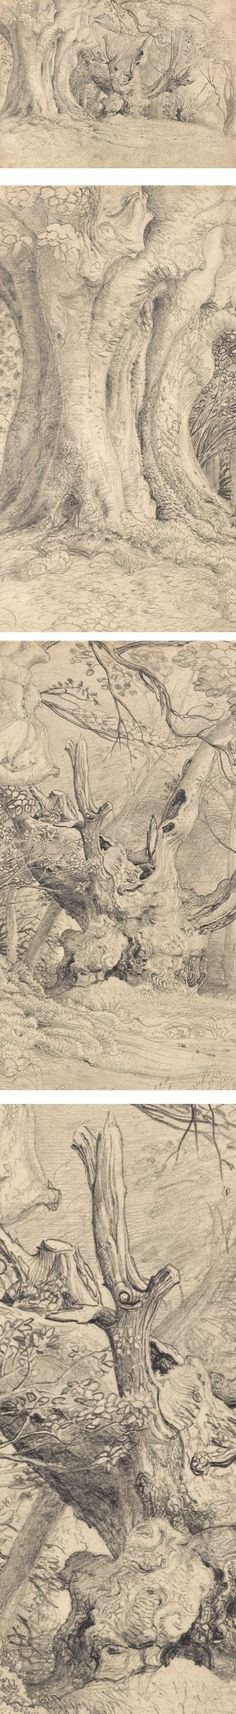 Lines and Colors: a blog about drawing, painting, illustration, comics, concept art and other visual arts » Eye Candy for Today: Samuel Palmer graphite drawing